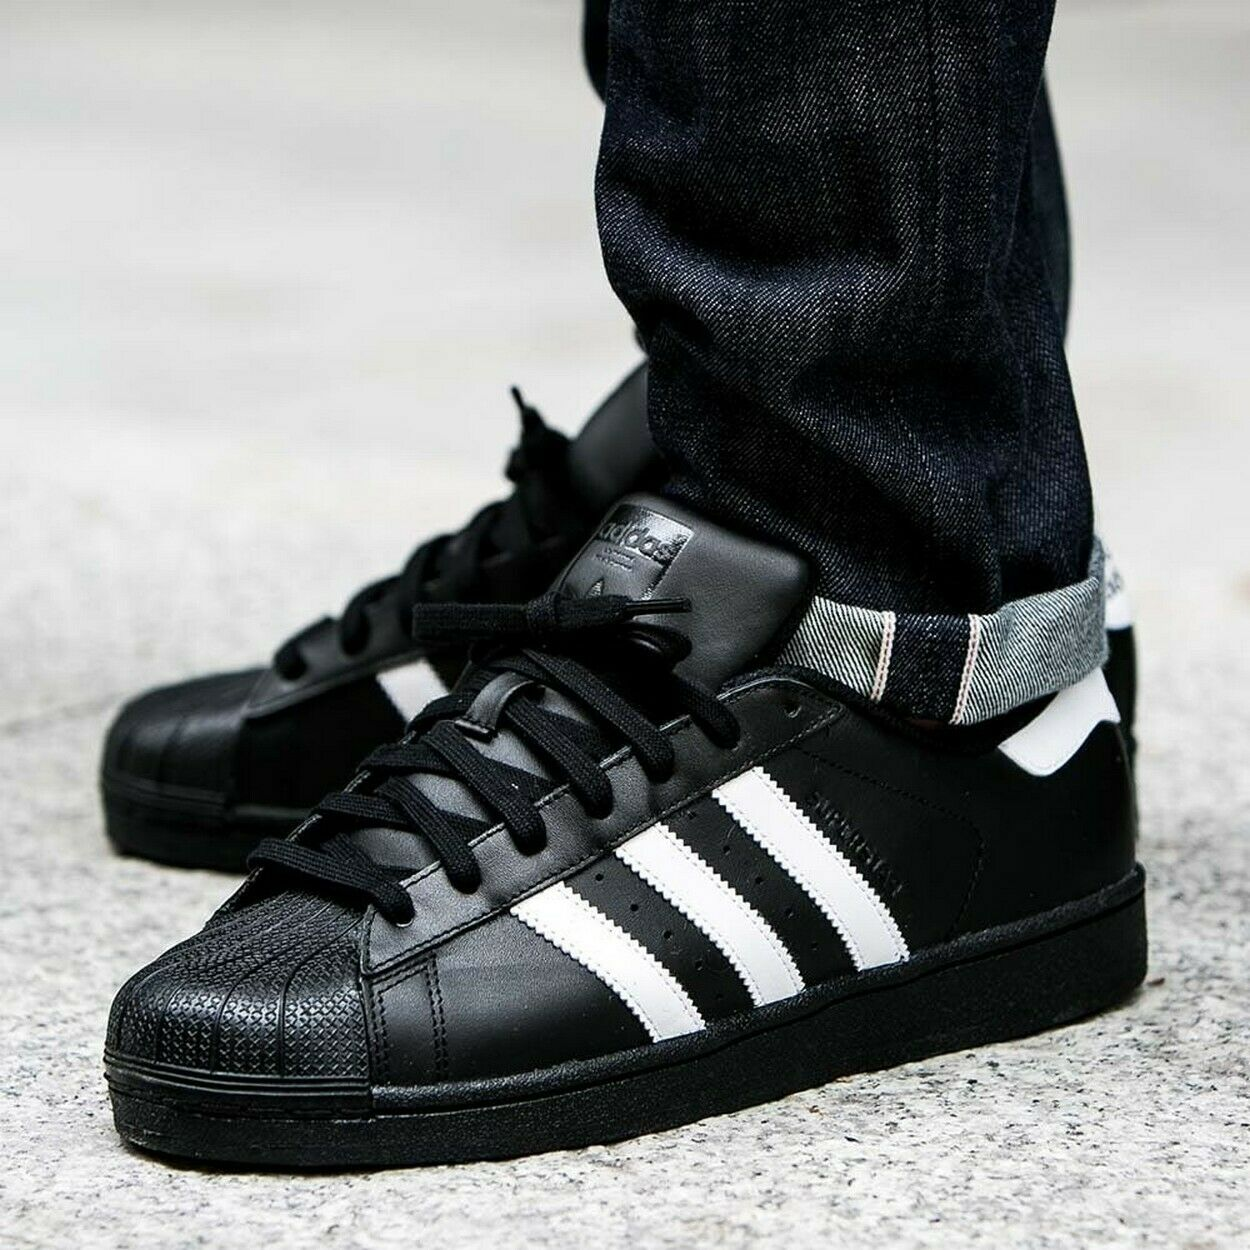 BNWB & Genuine adidas originals ® Superstar Foundation Retro Trainers UK Größe 11